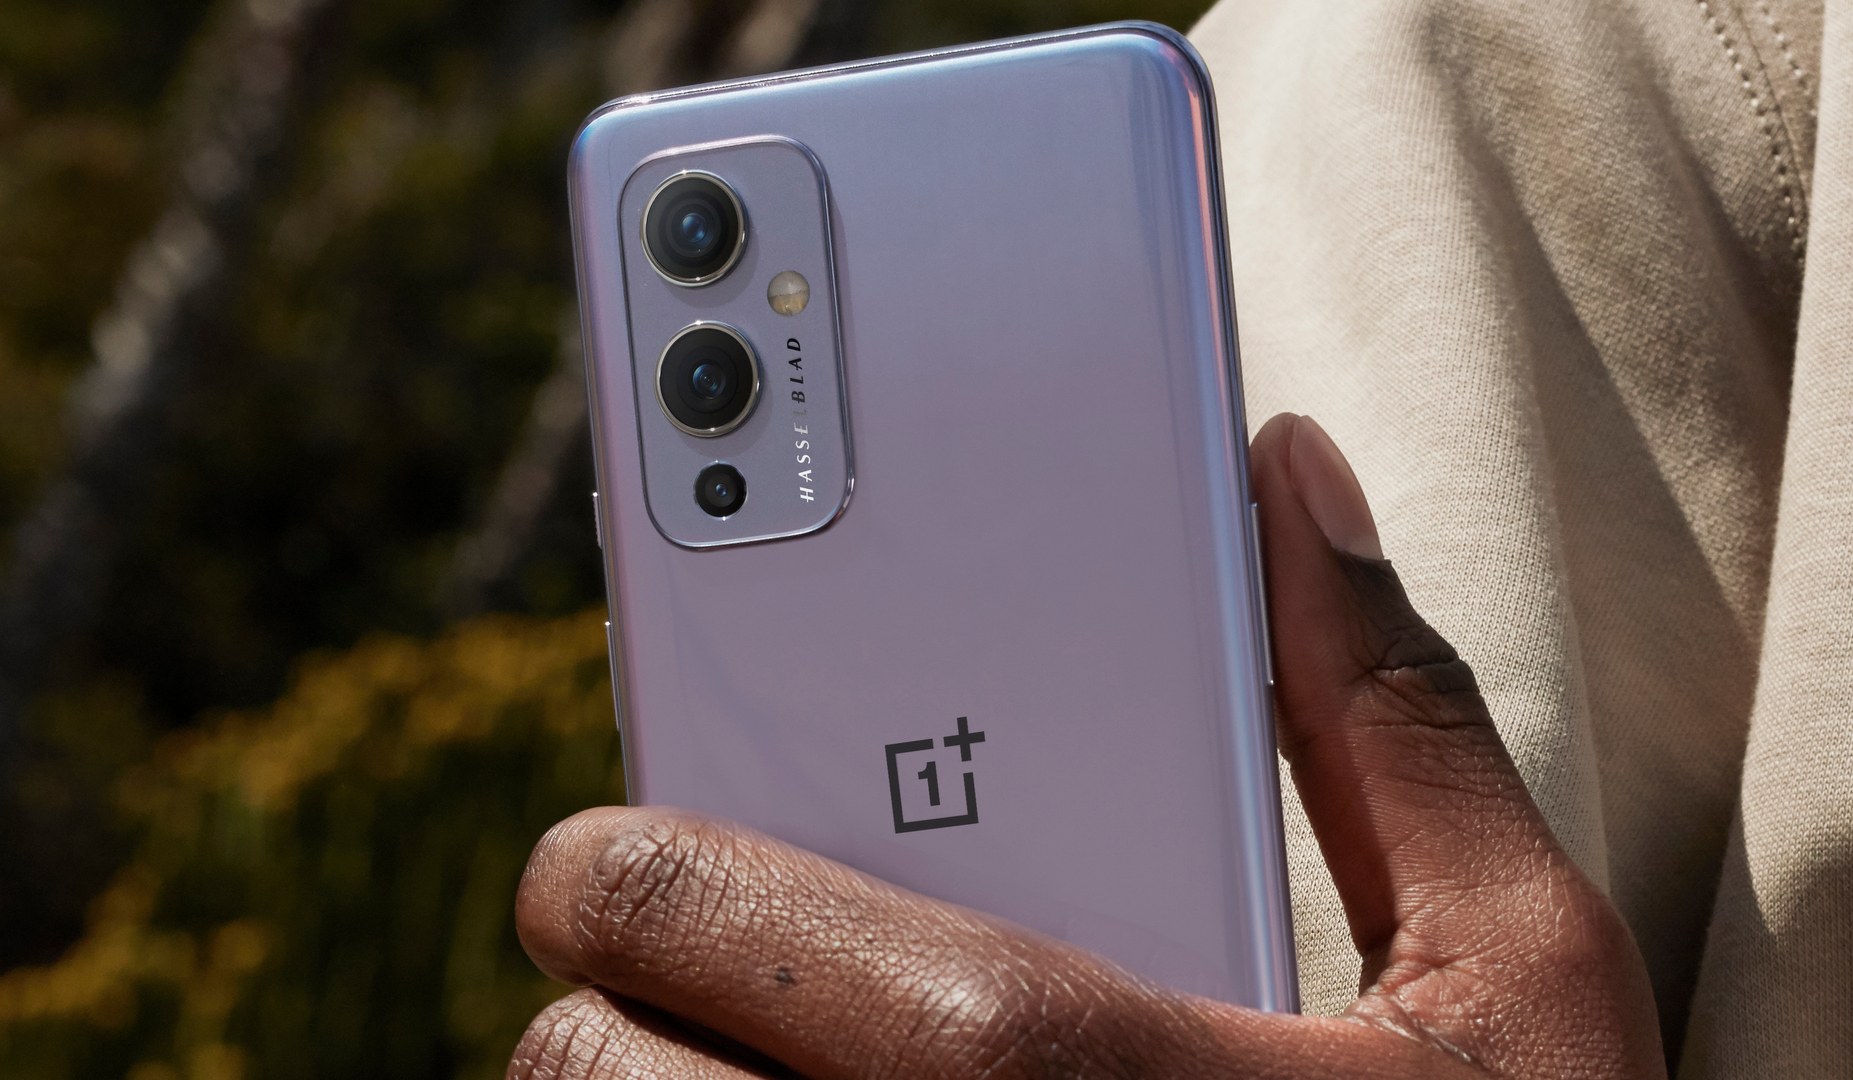 OnePlus 9, Garmin smartwatches and more deals are available today